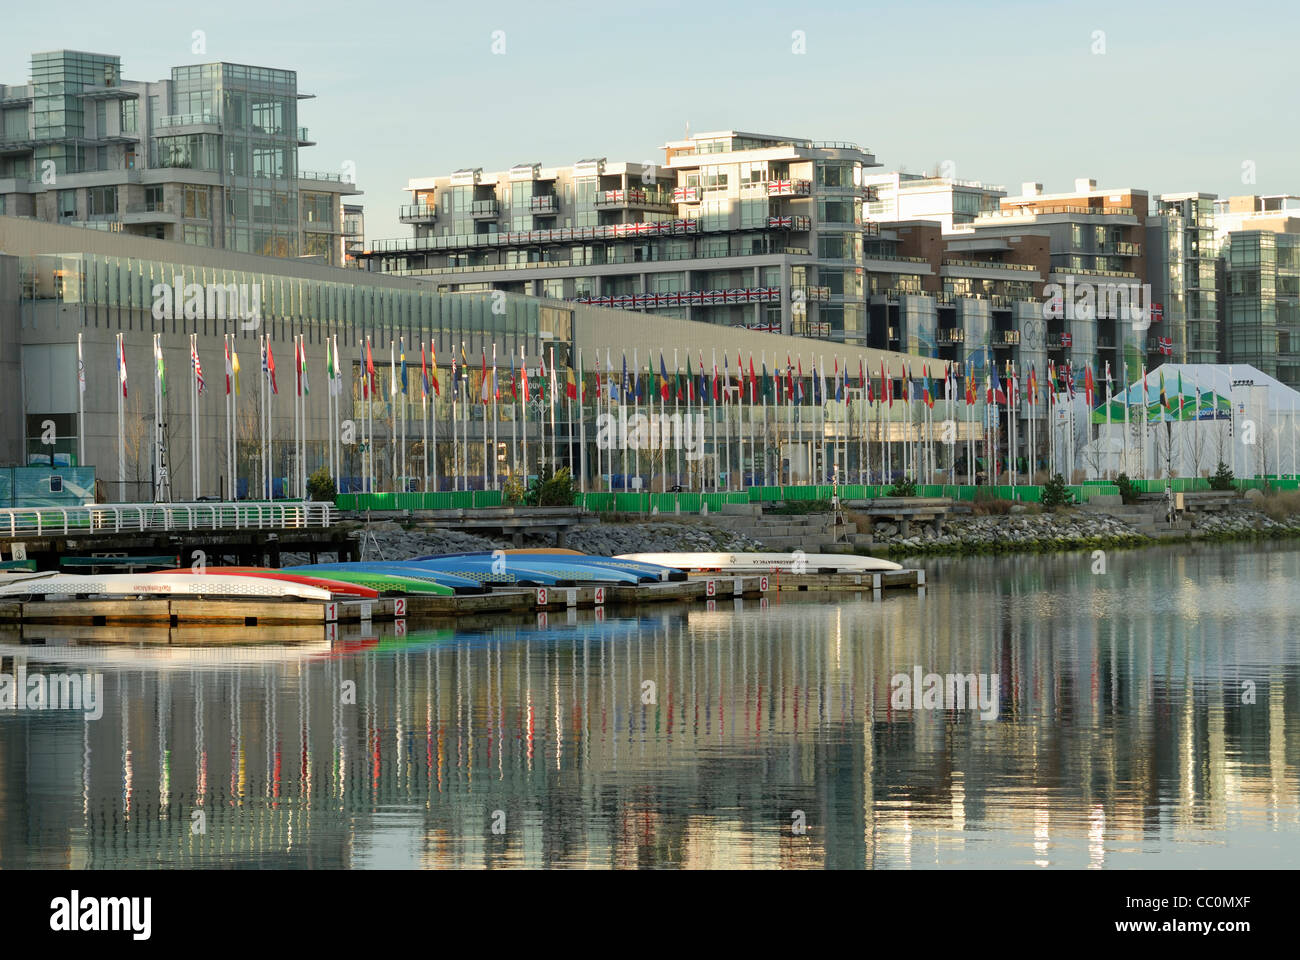 2010 Winter Olympic Athletes Village located on the waterfront of False Creek, Vancouver. - Stock Image